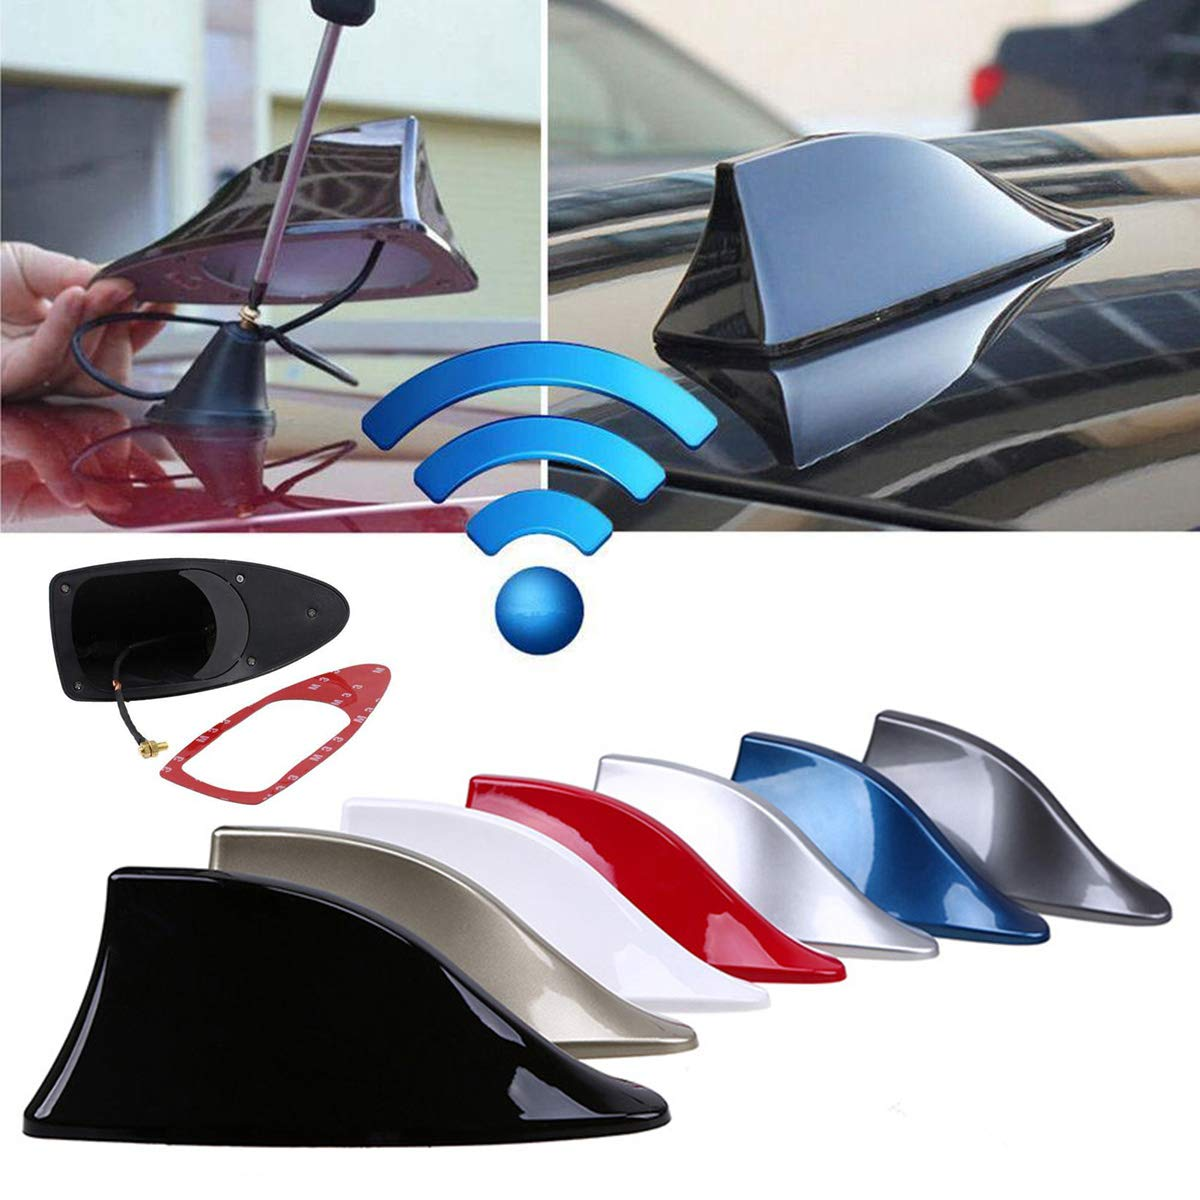 Blue Universal Vehicles FM Signal Fin Aerials Cover Car Top Roof Radio Shark Fin Antenna Cover